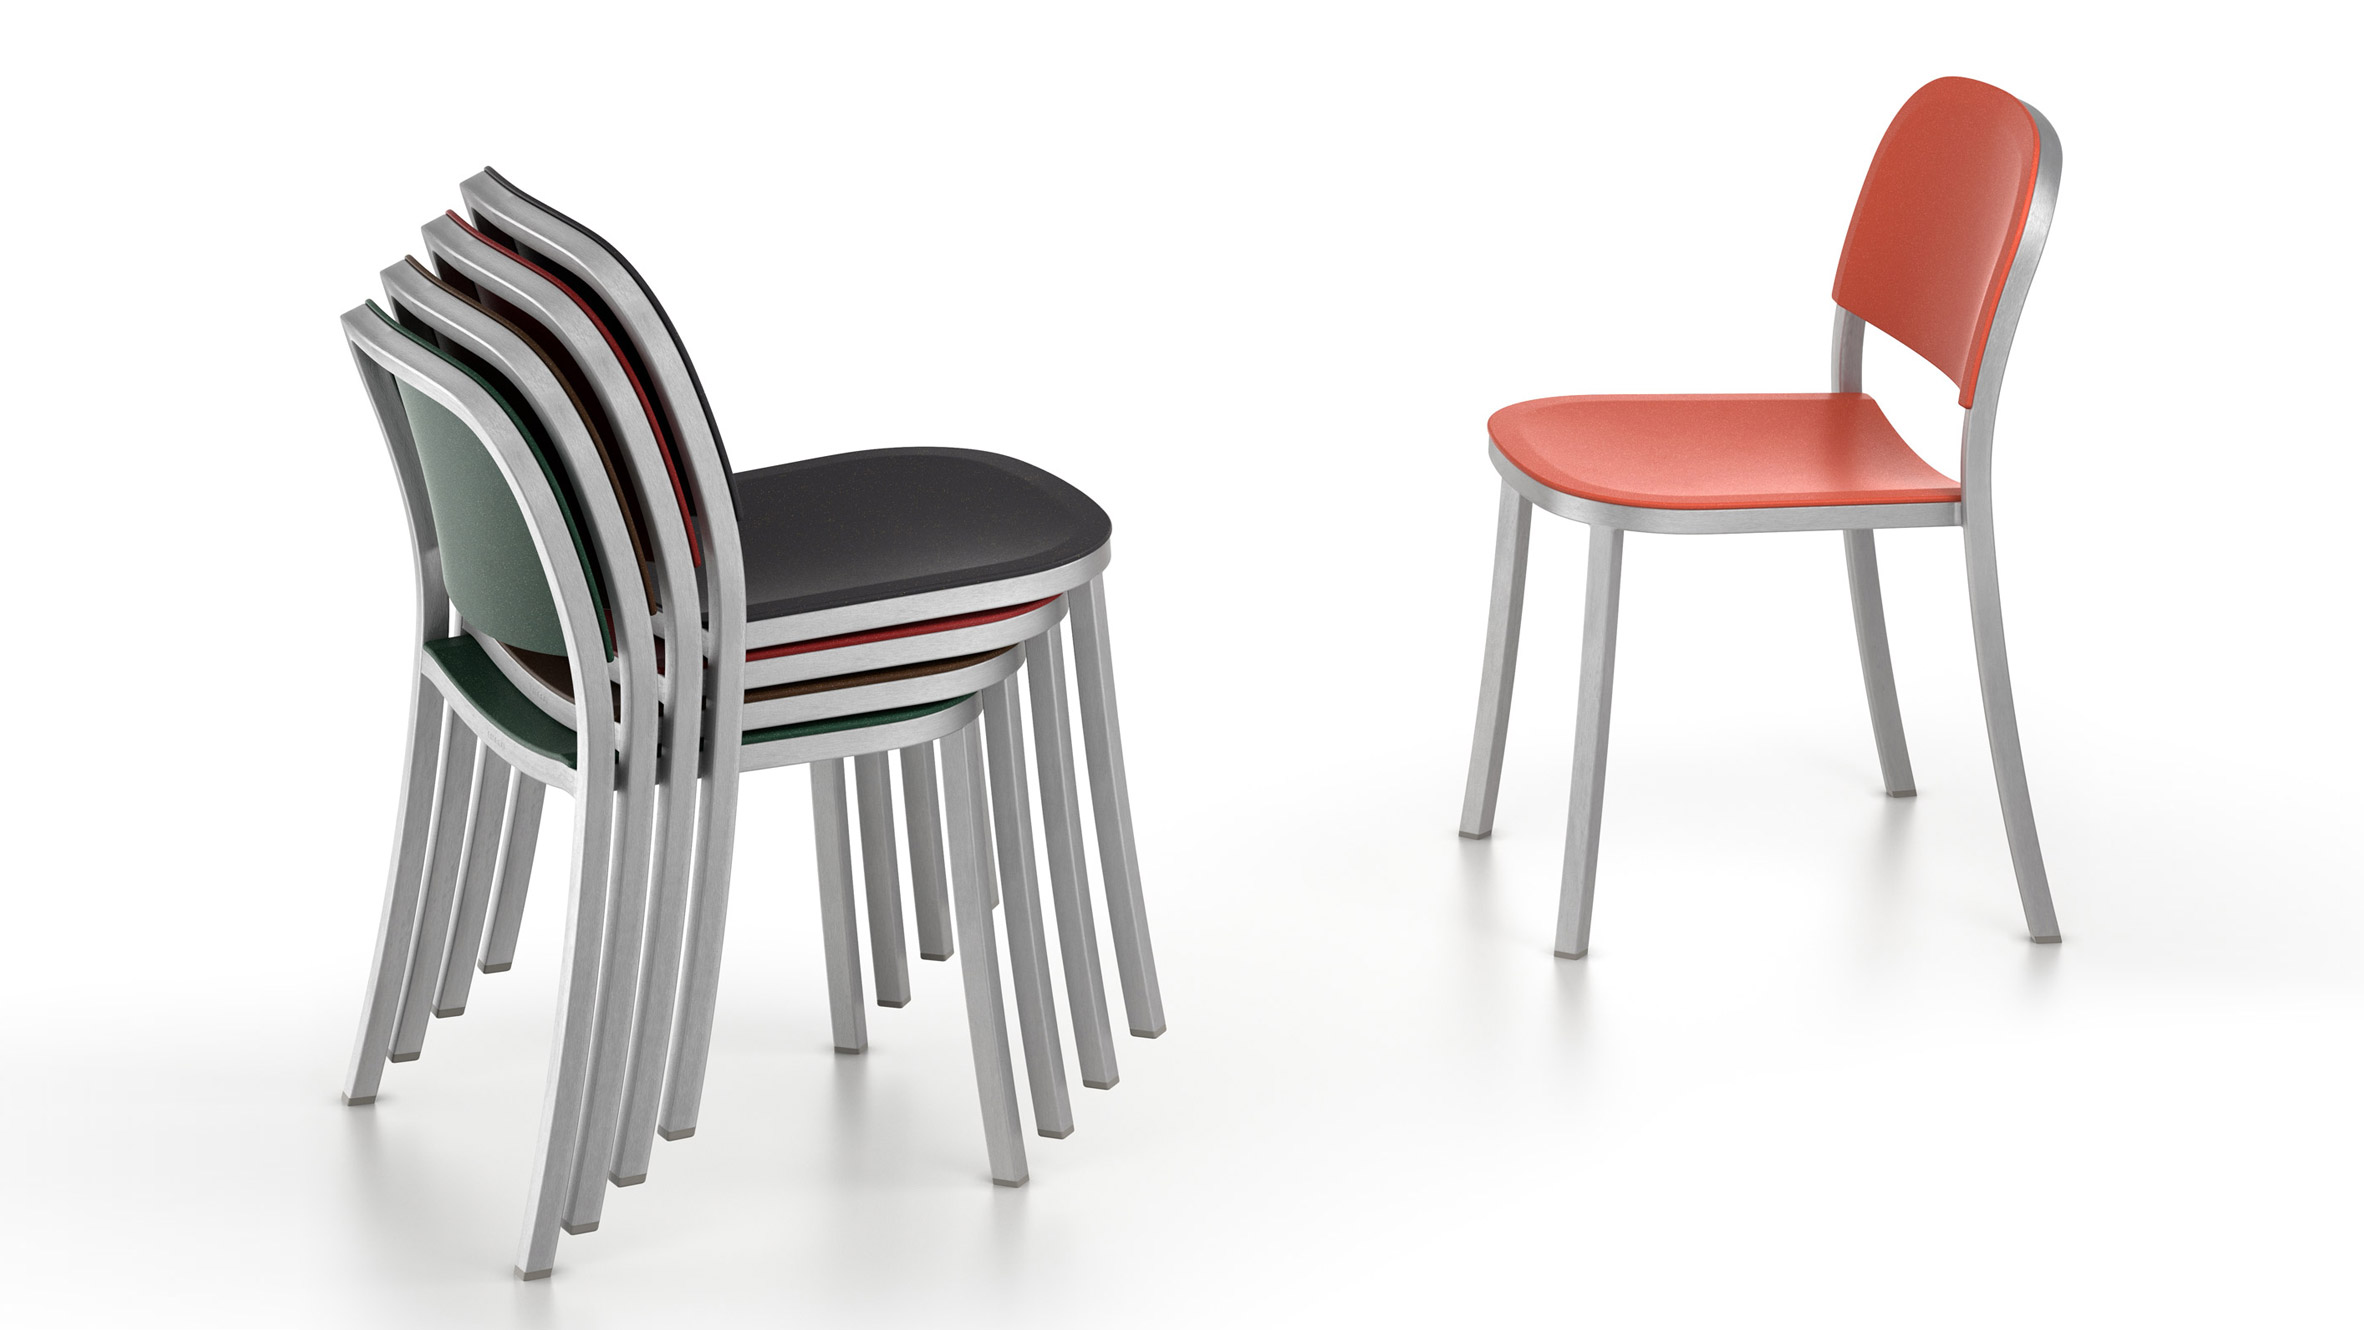 Jasper Morrison debuts recycled aluminium furniture collection for